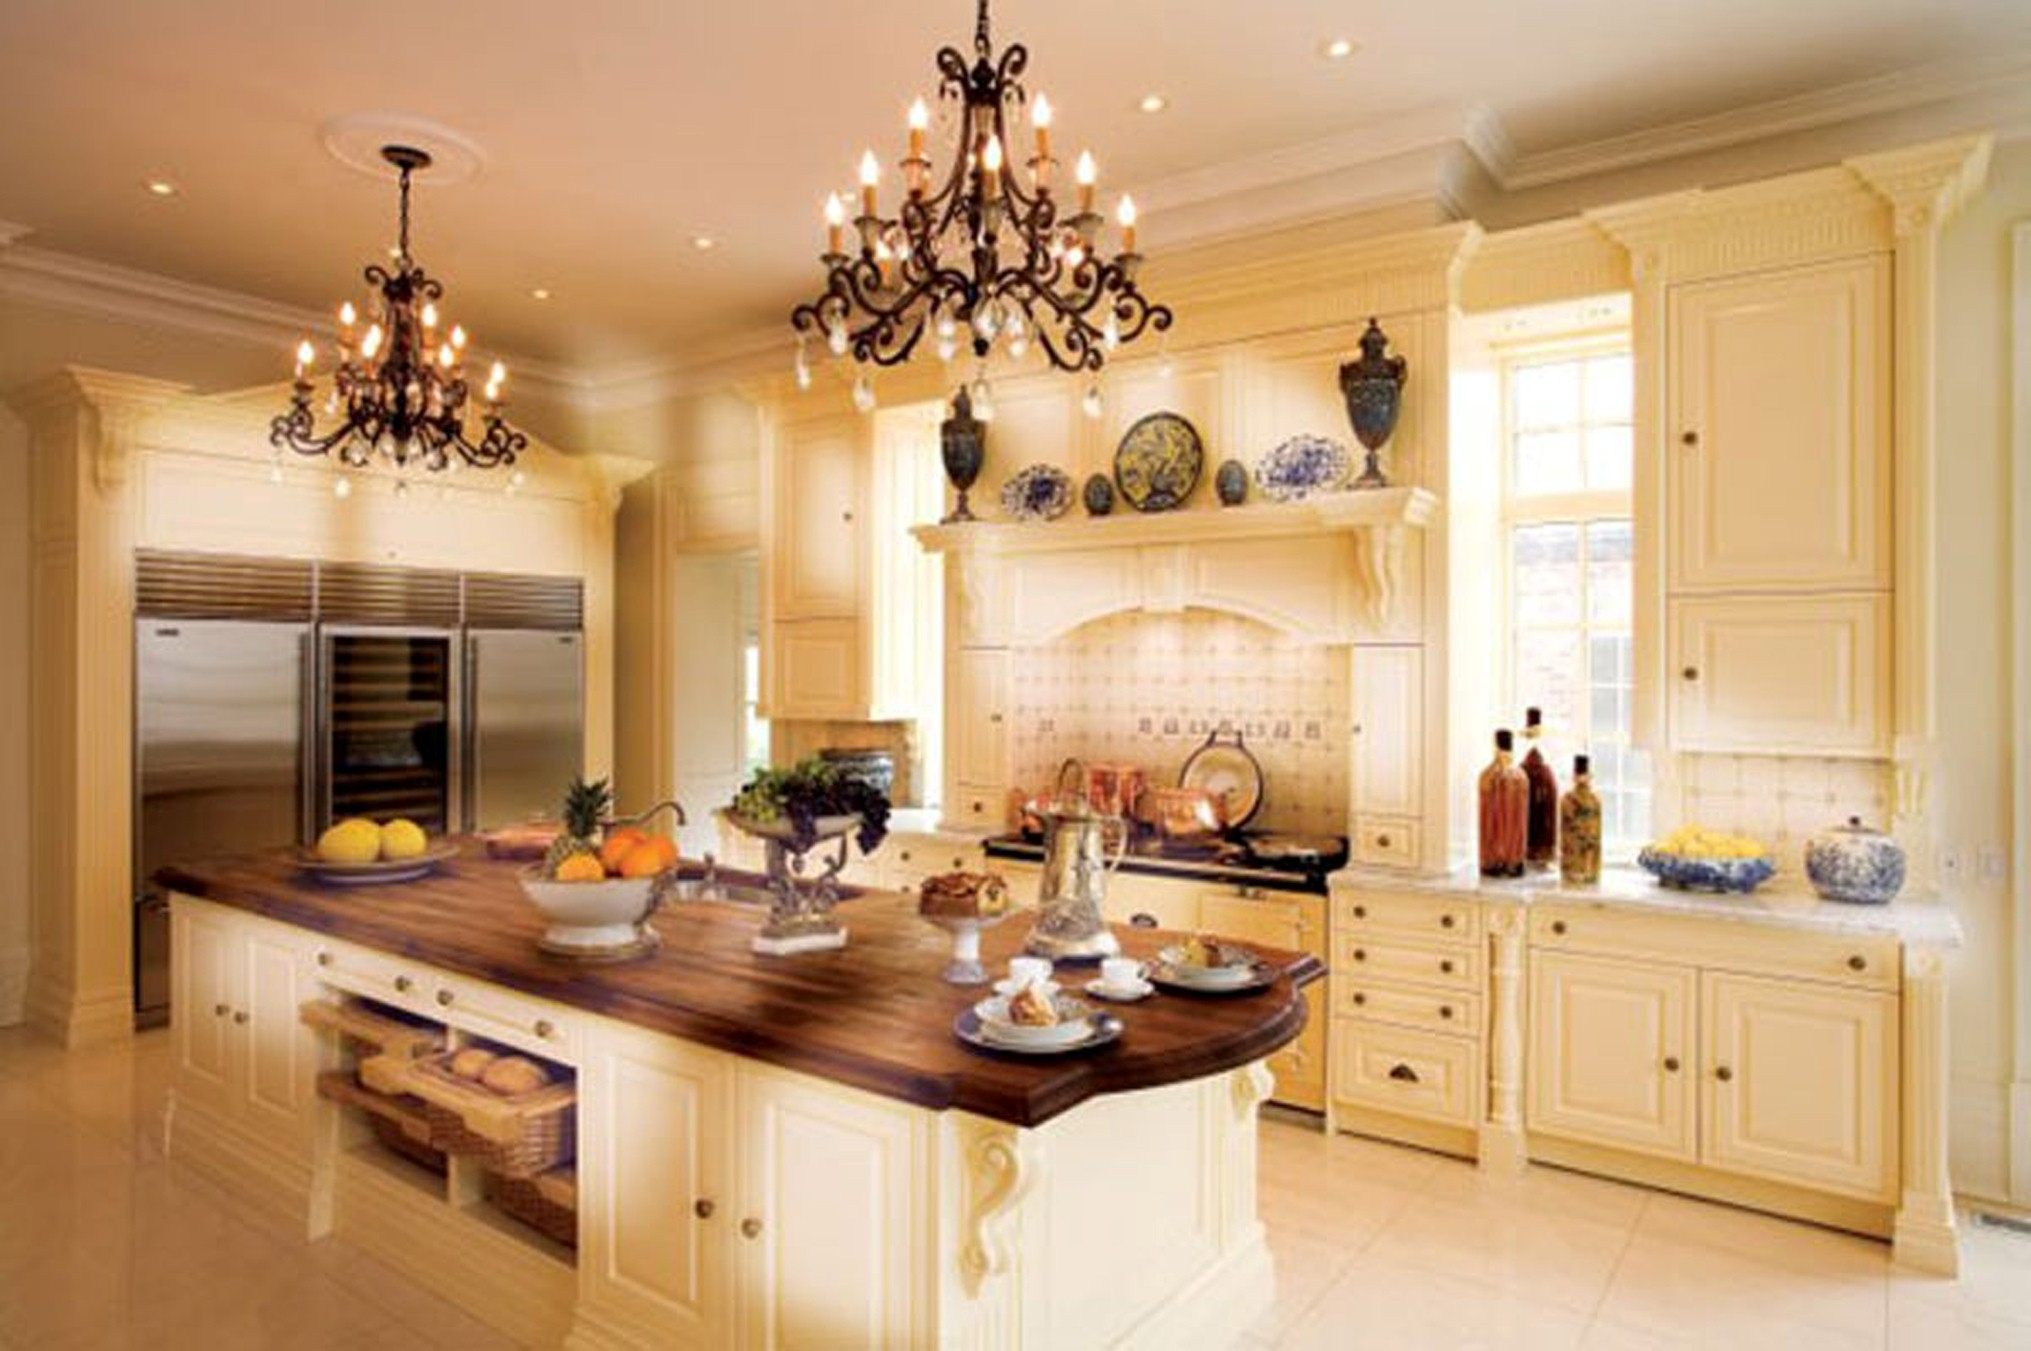 Luxurious Ideas Of Kitchen Cabinets Design Layout Using Chandeliers Along With Porcelains And Kitchen Appliances Amazing Inspirations For Your Kitchen Cabinets Layout (Image 15 of 123)